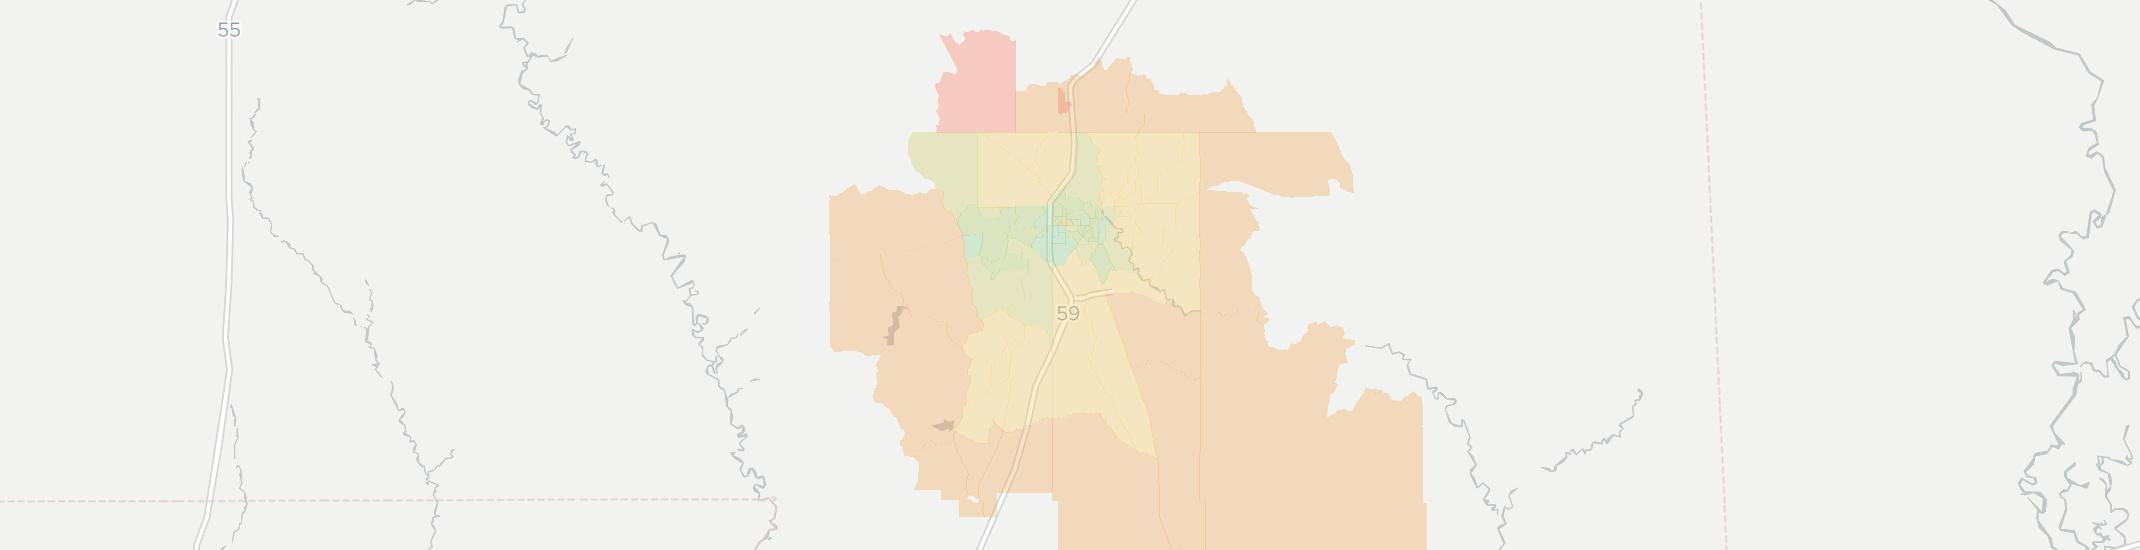 Hattiesburg Ms Zip Code Map.Internet Providers In Hattiesburg Compare 15 Providers